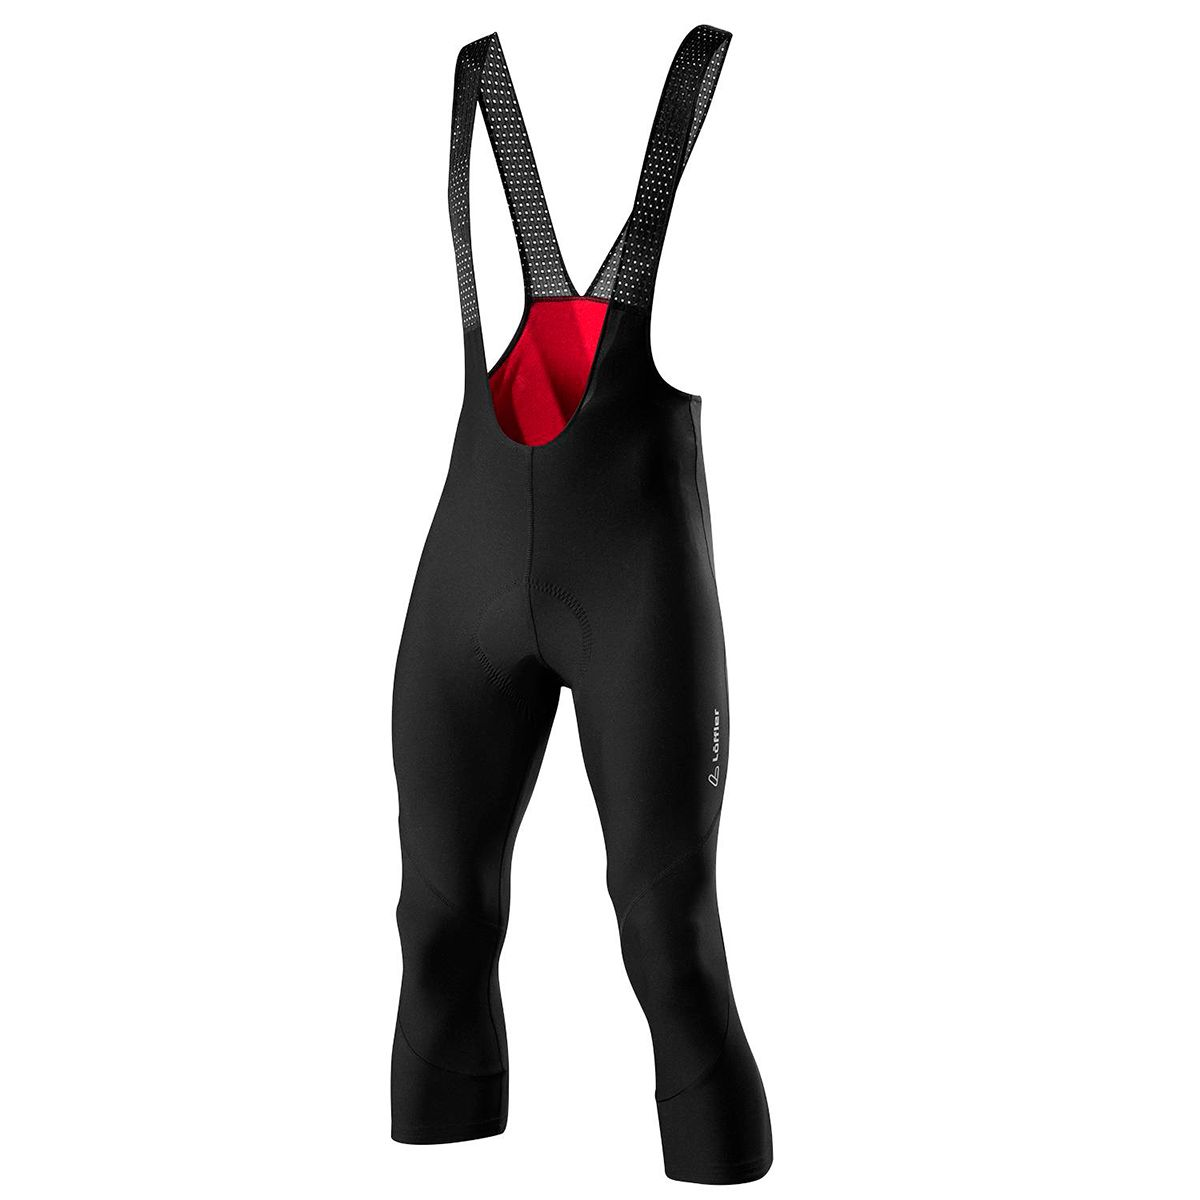 BIKE BIB PANTS 3/4 BASIC (MEN'S) bib tights